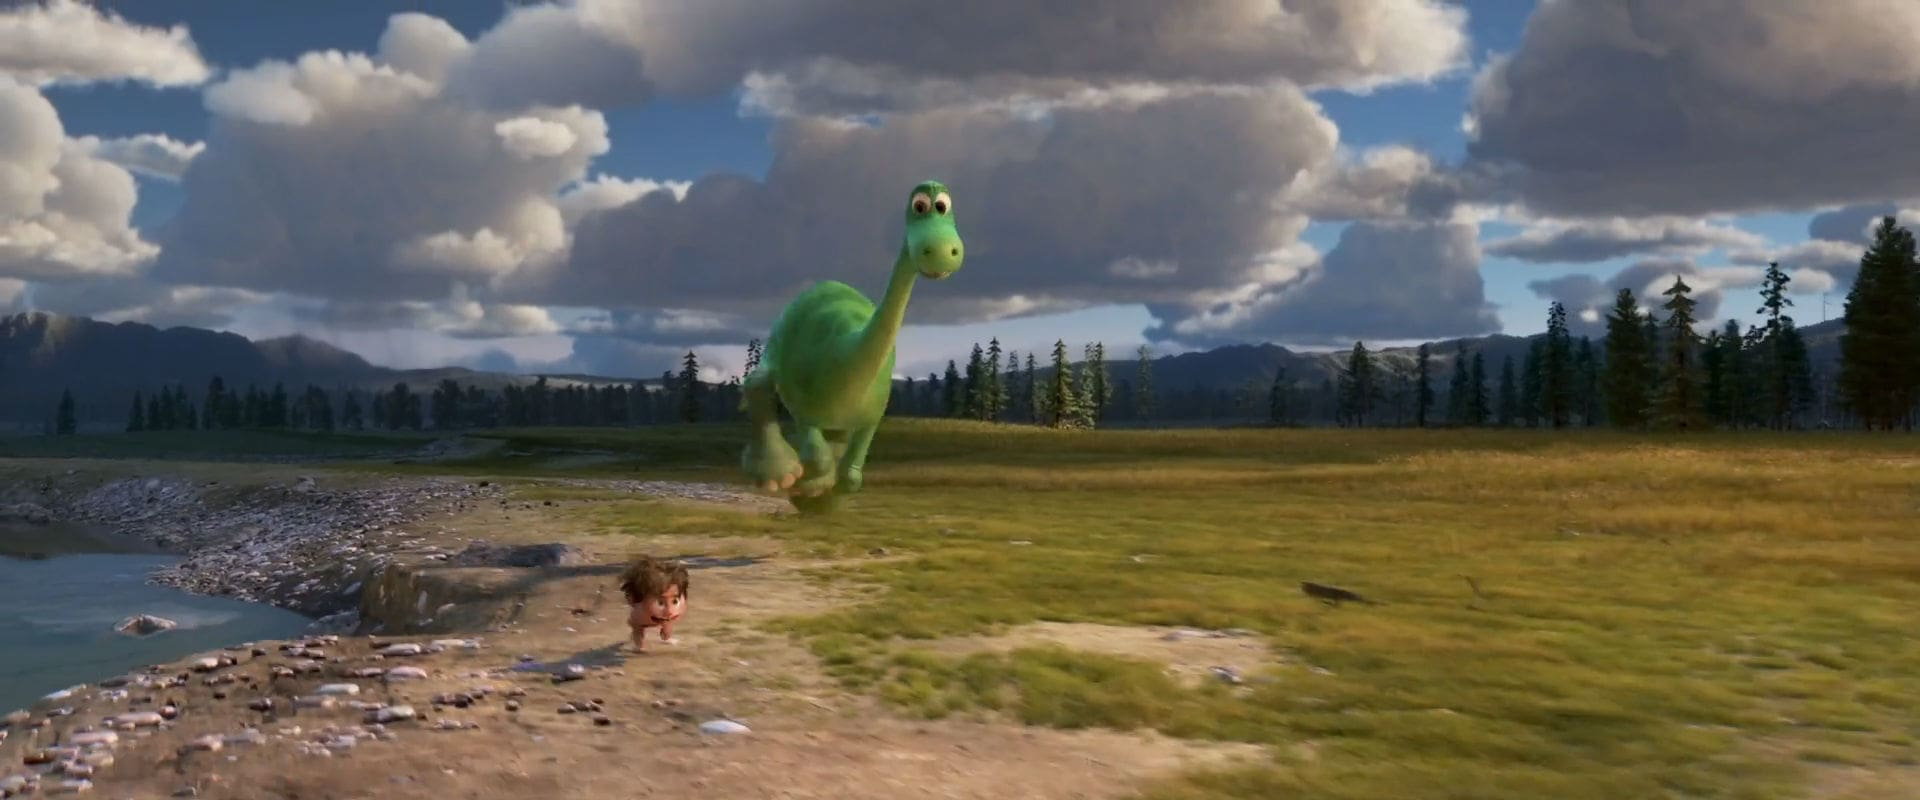 The Good Dinosaur - One Moment